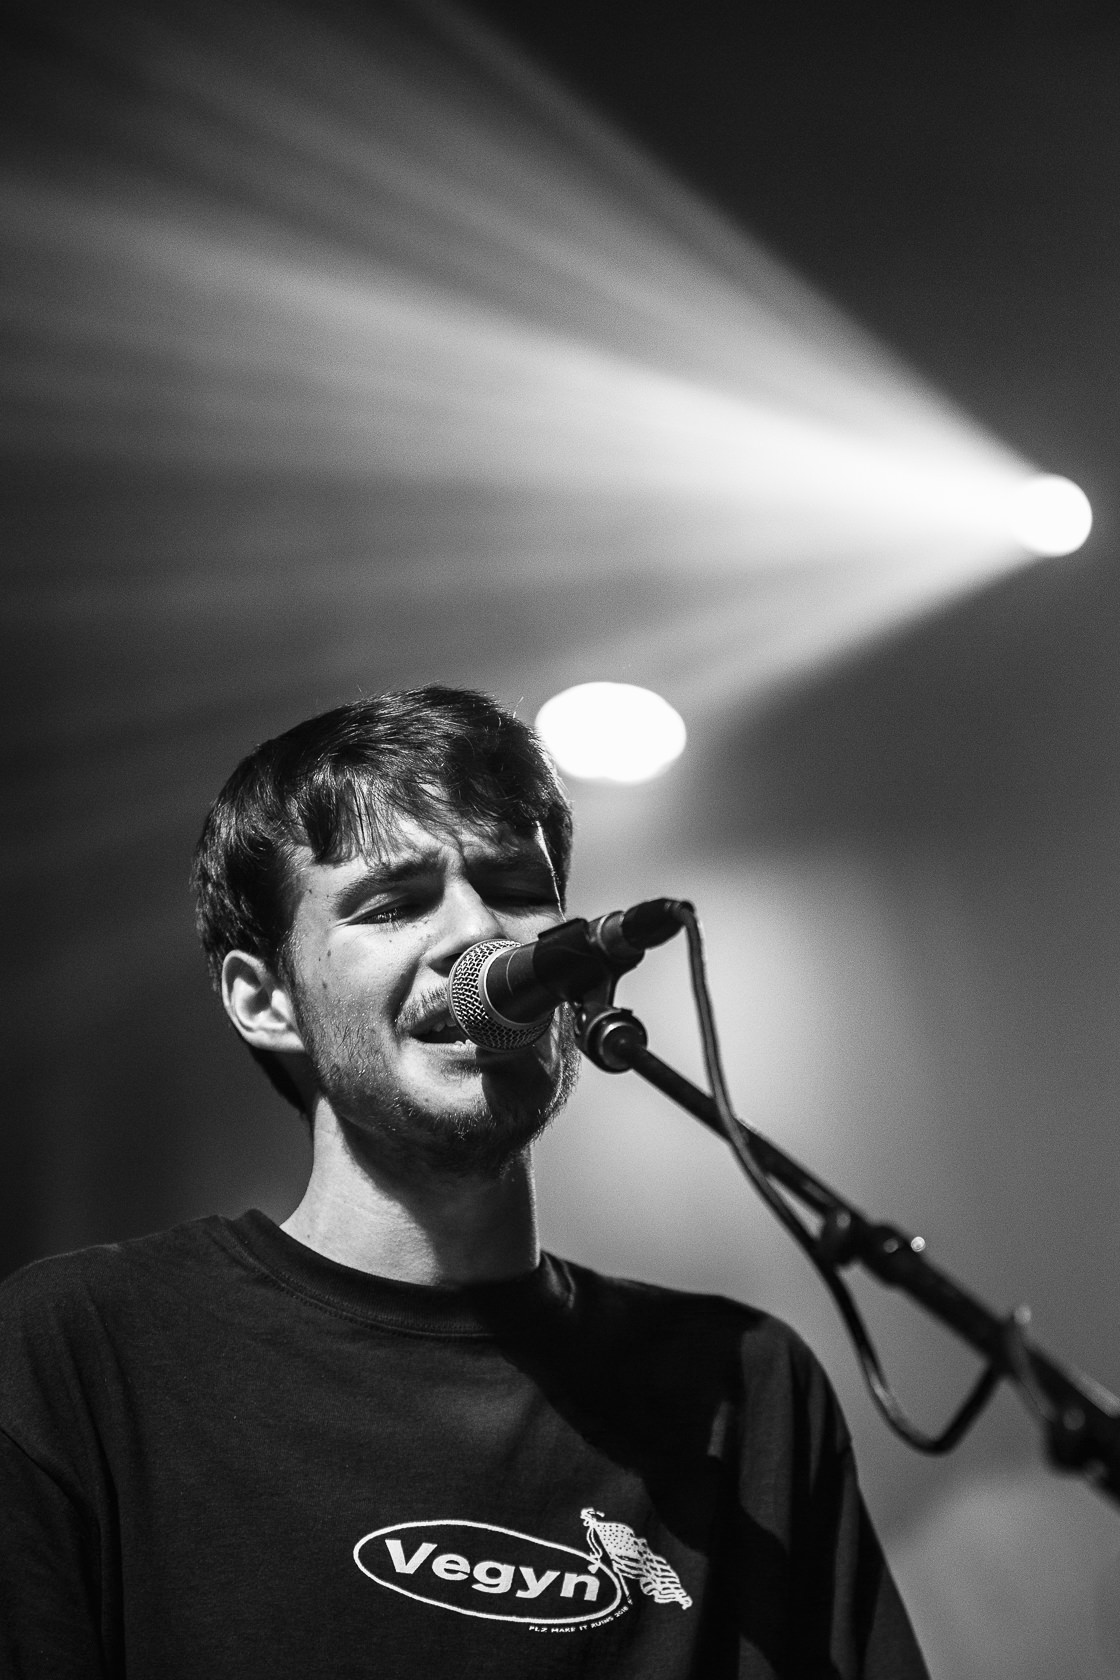 180813-kirby-gladstein-photography-rex-orange-county-concert-fonda-la-3609-3.jpg